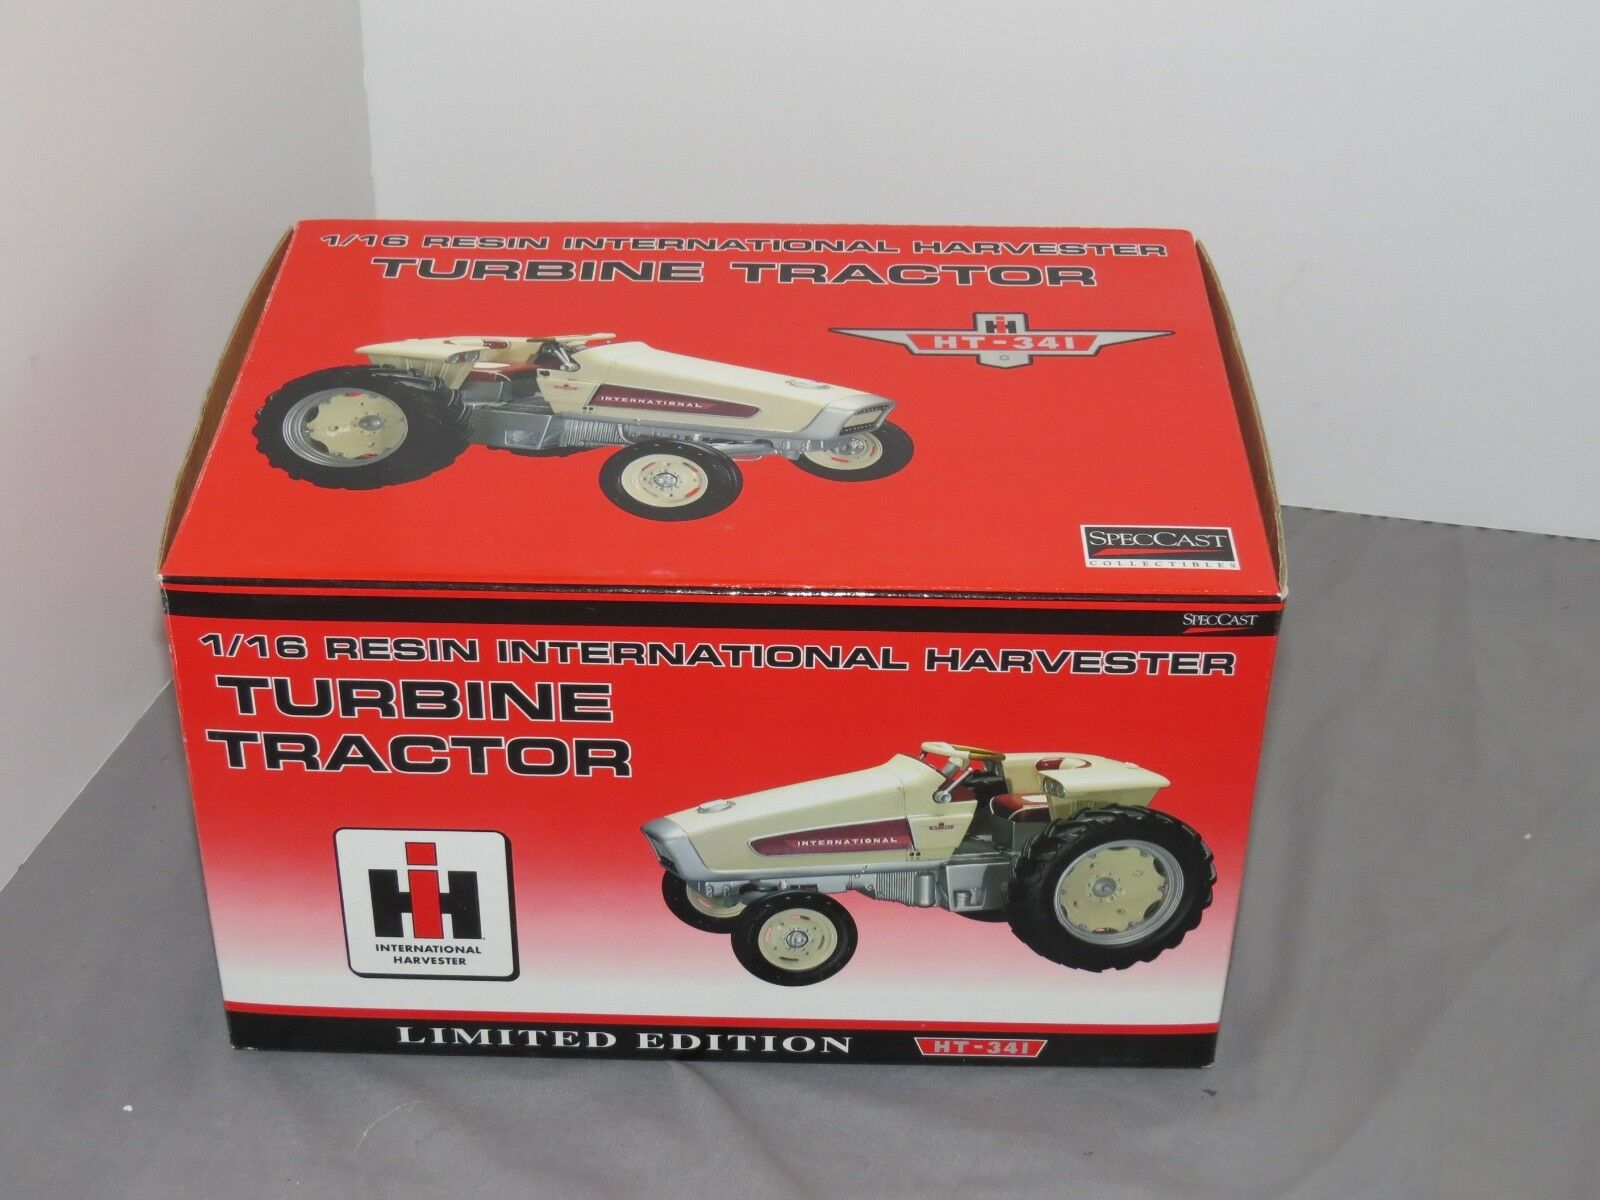 1/16 International Harvester edición limitada de tractor de turbina. Nueva en Caja Spec Cast